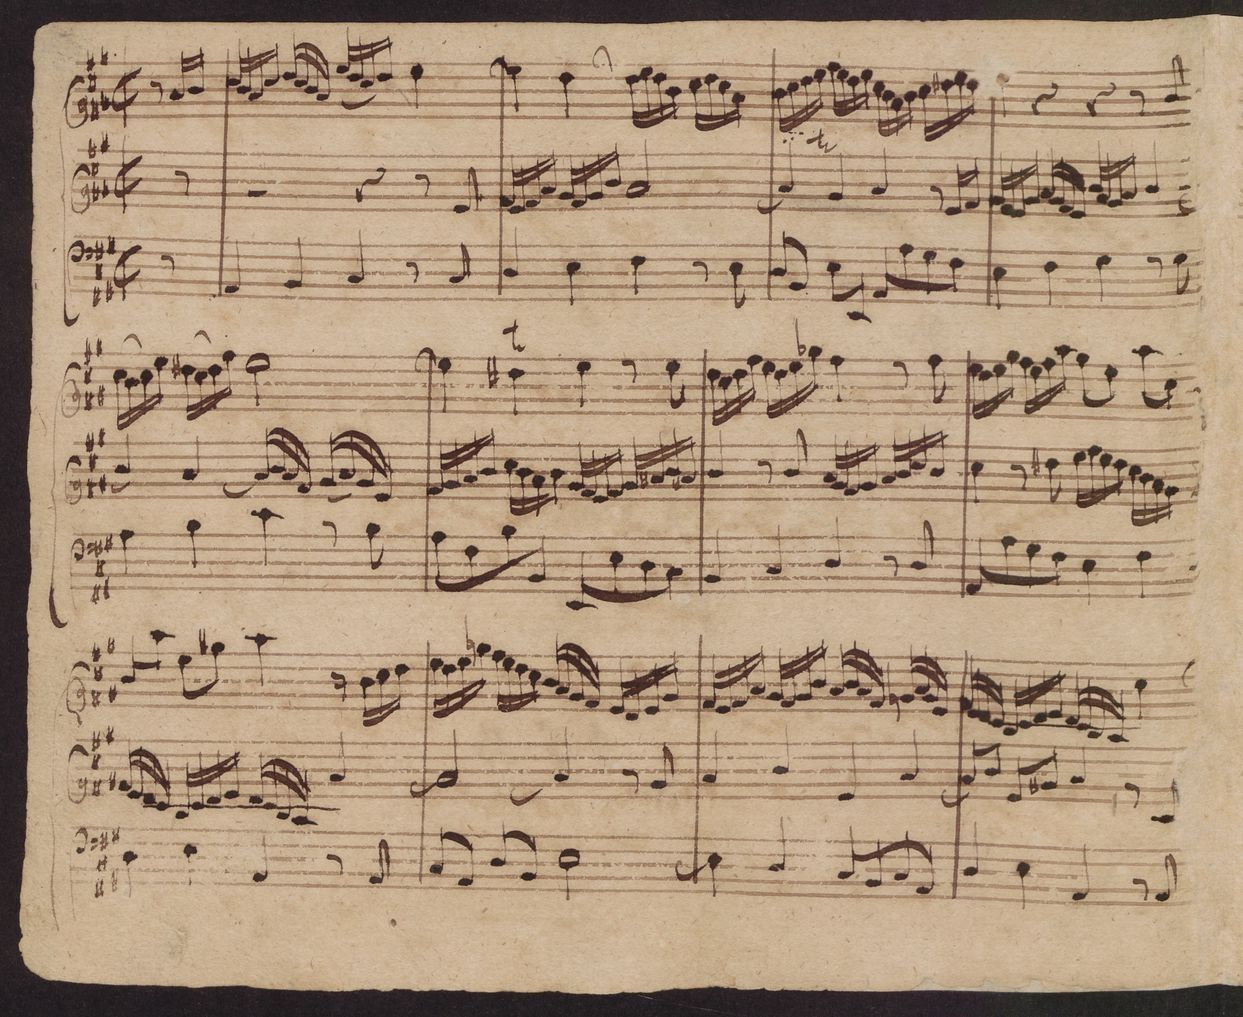 Allein Gott in der Höhu0027 sei Ehr, BWV 664a, in hand copy by Johann Tobias Krebs